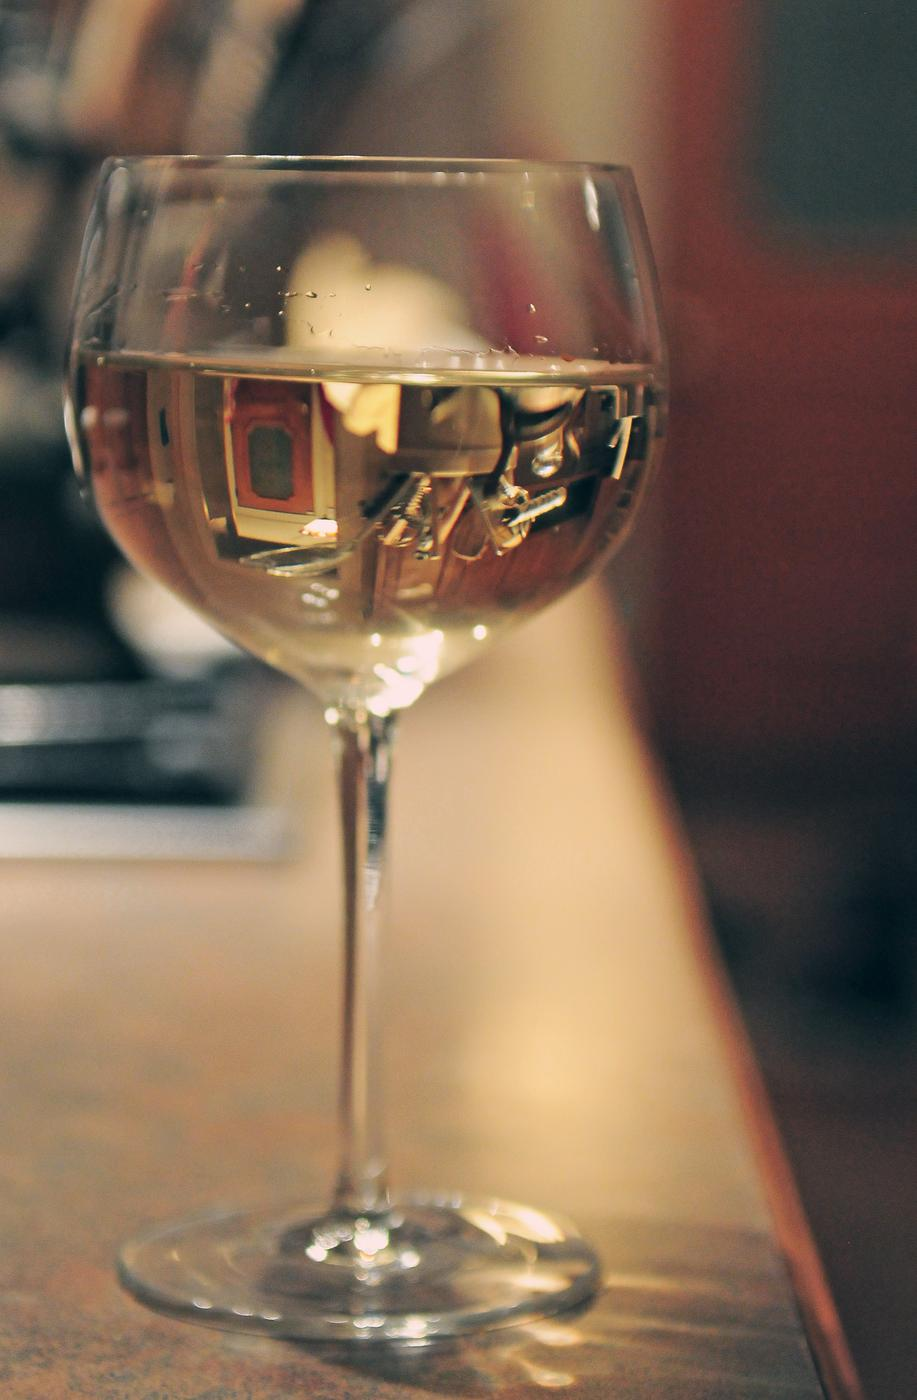 This year's top wine can be found at… Aldi?